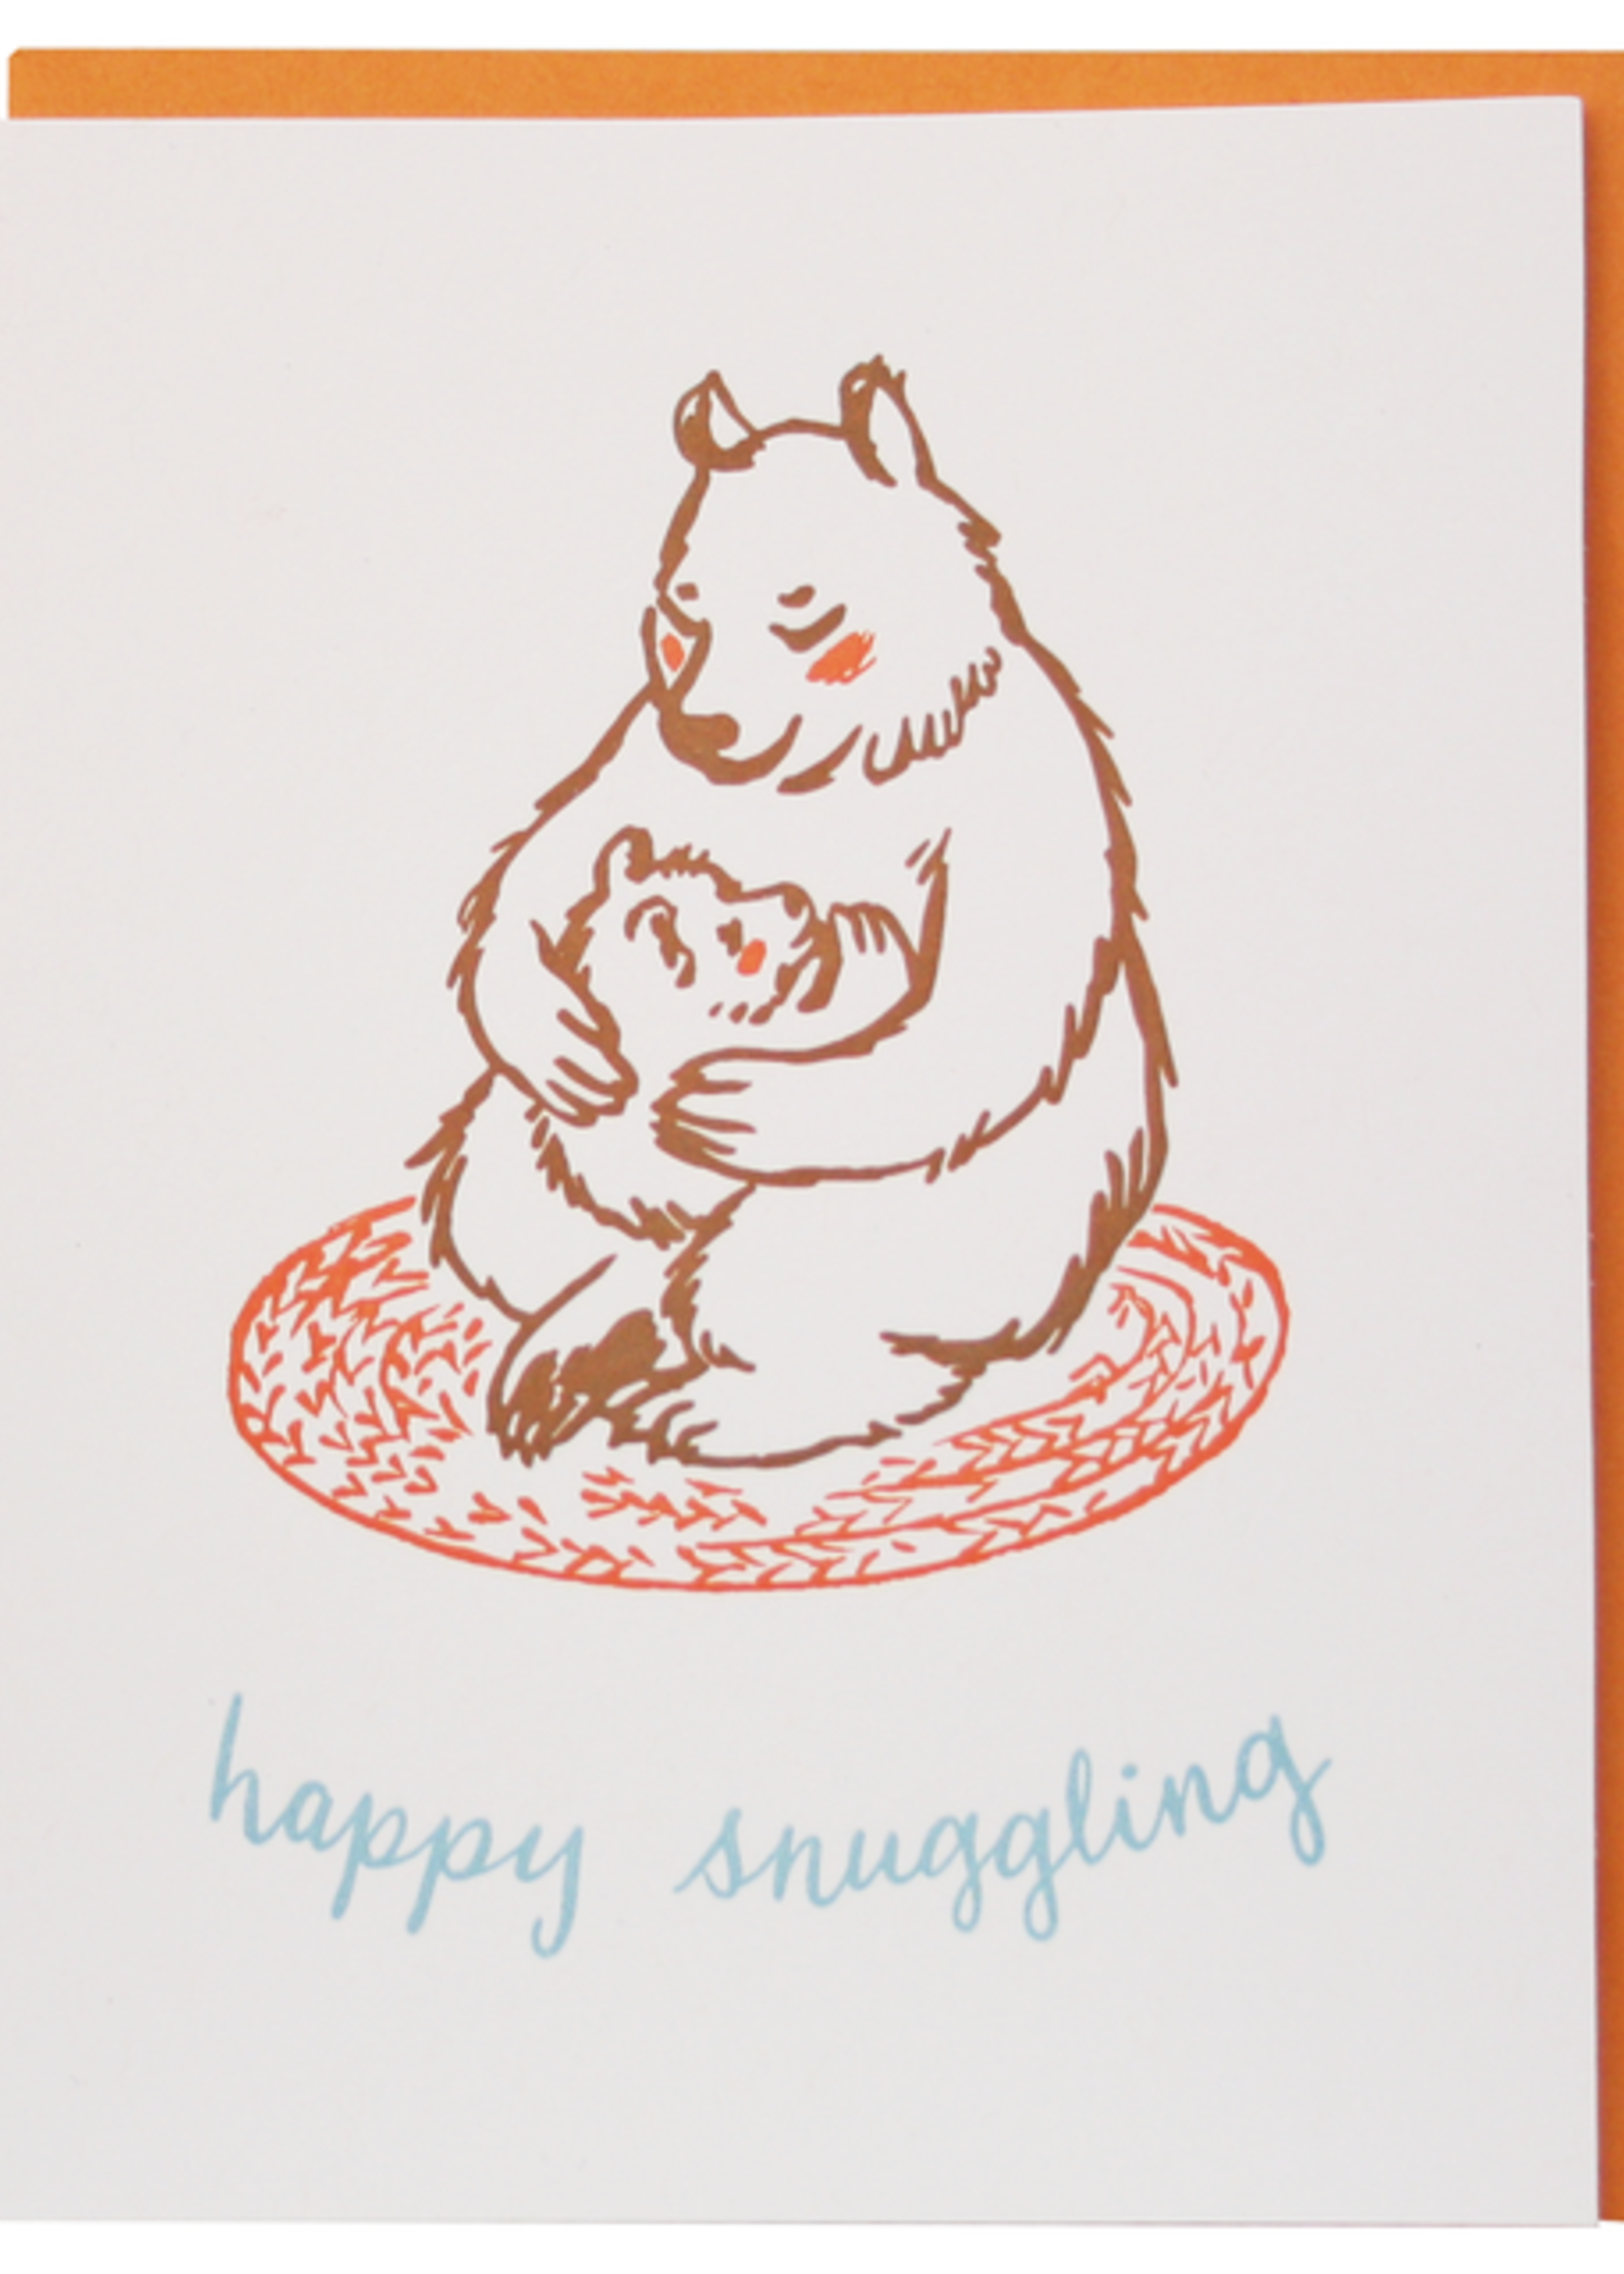 Snuggling Bears Baby Card